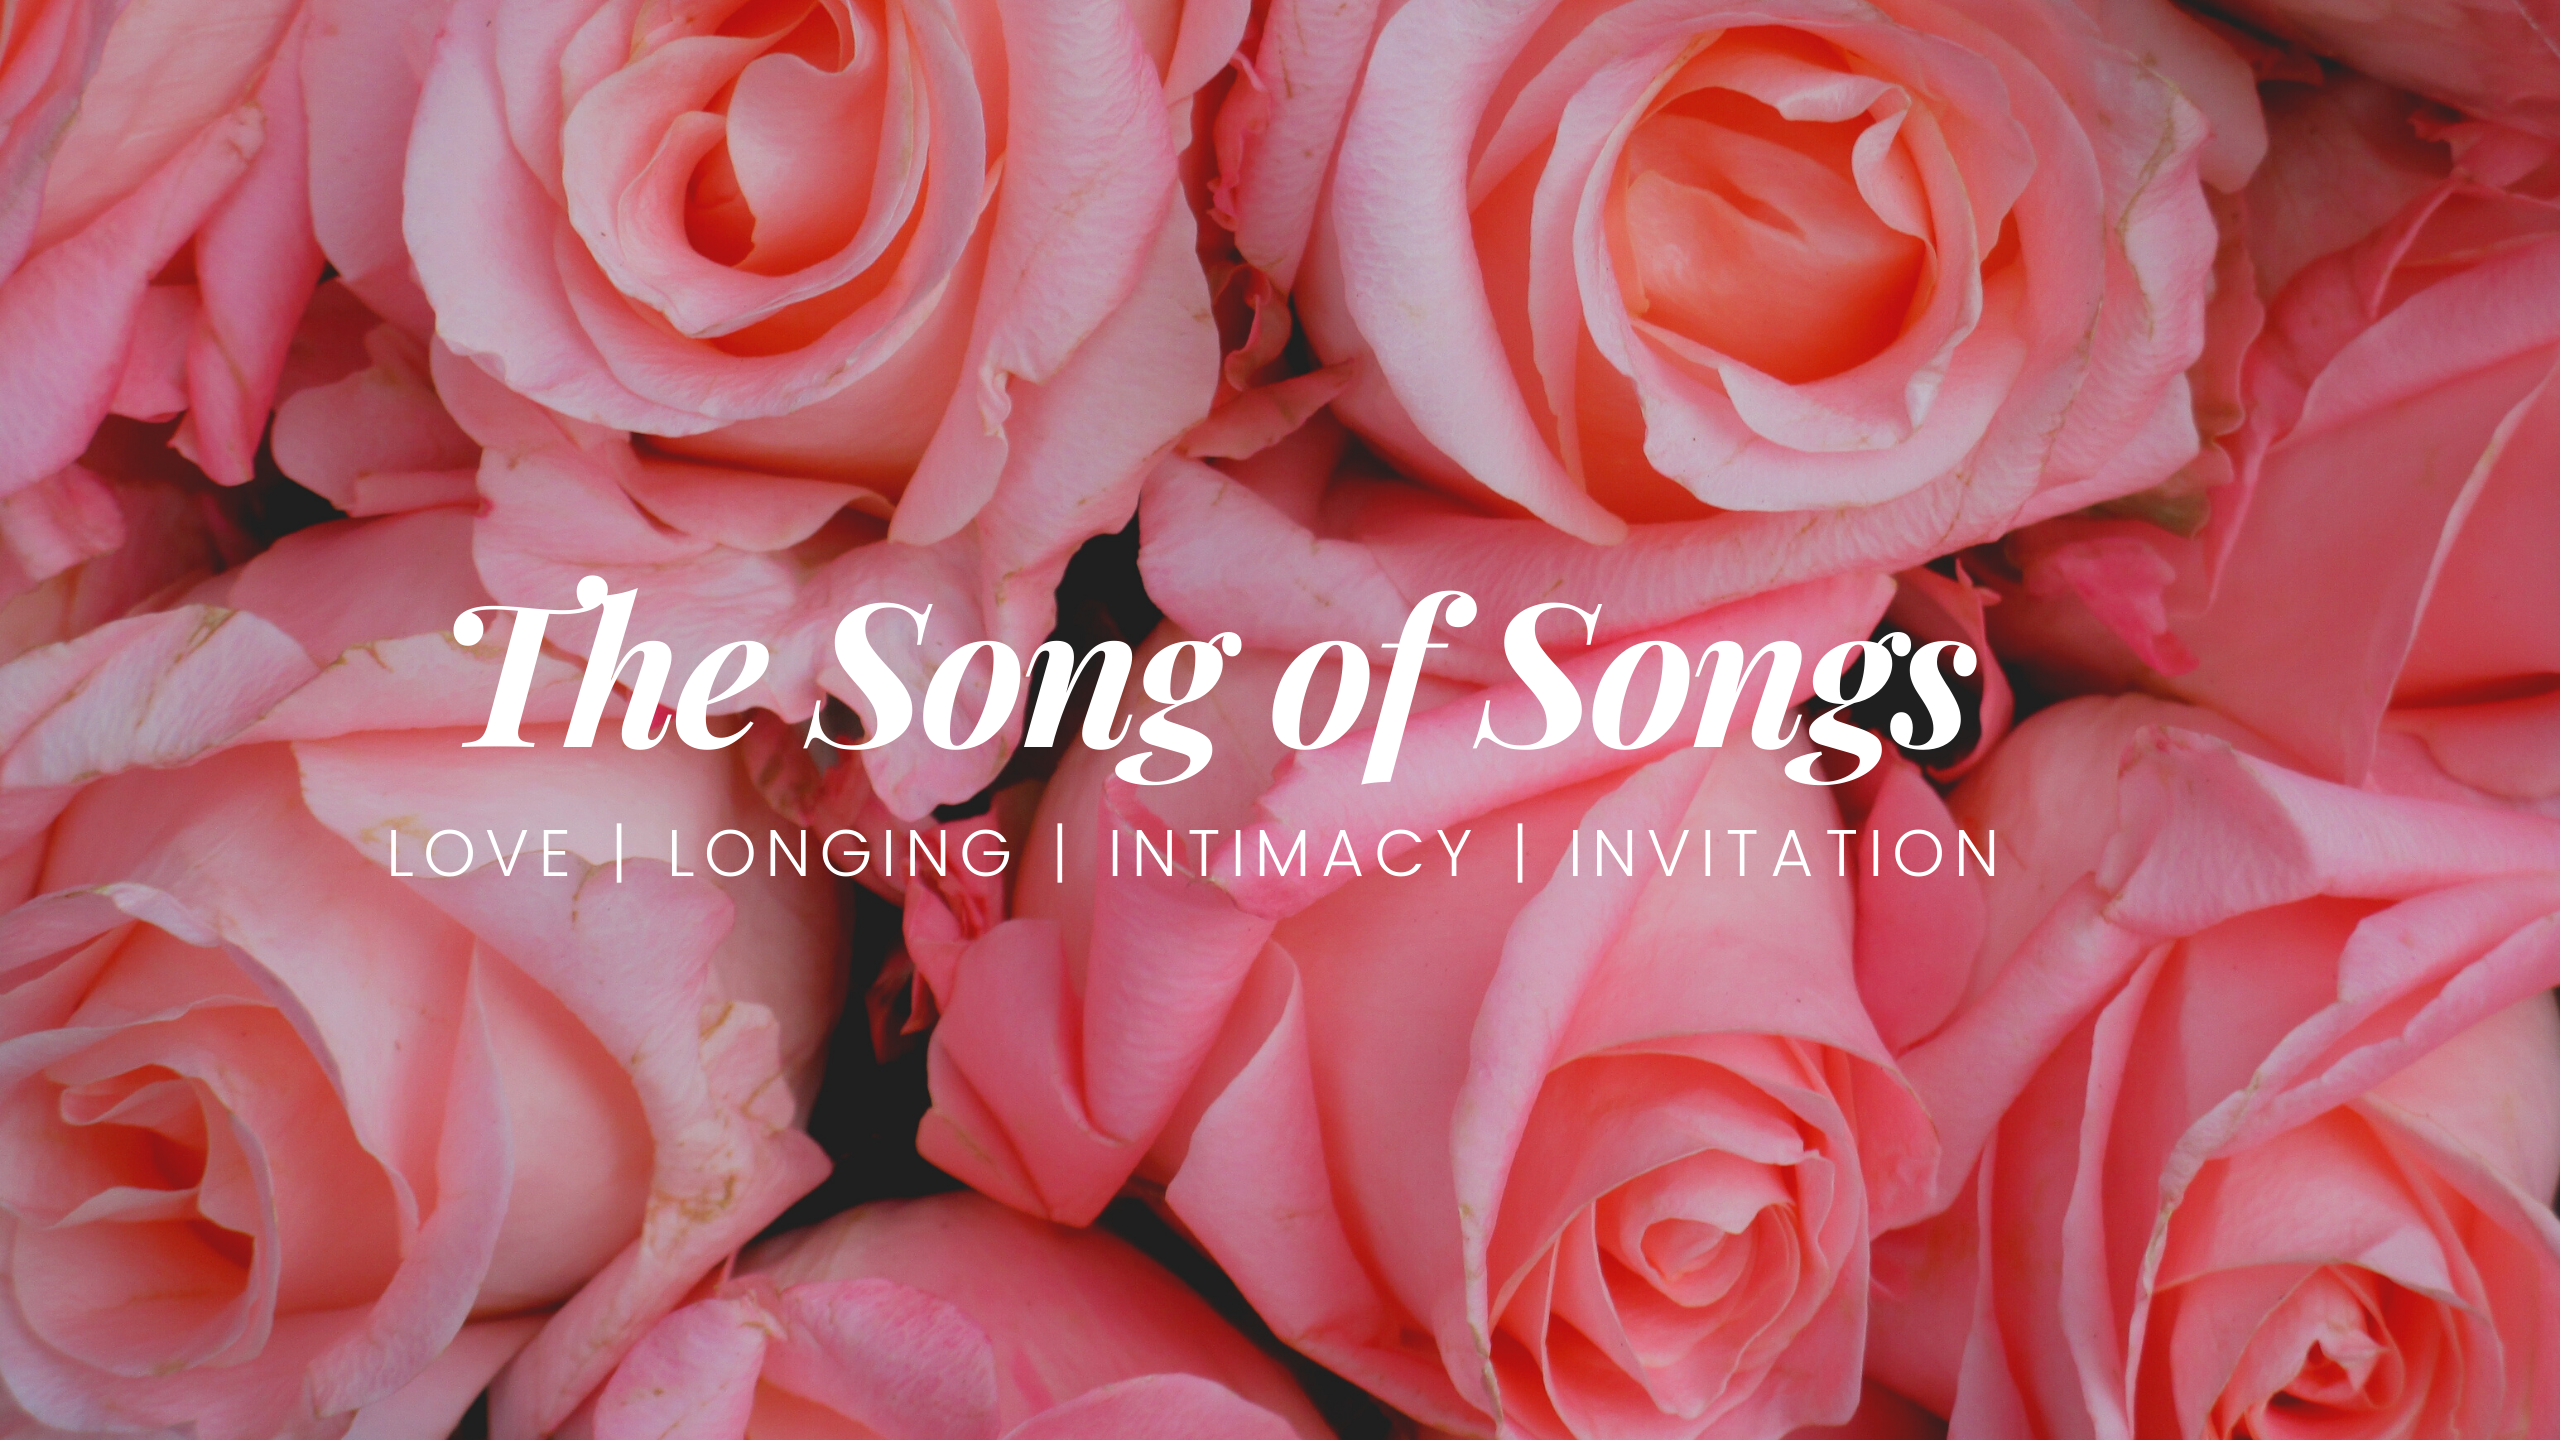 Sunday Morning Sermon 14.02.21 – Song of Songs 1:5-17